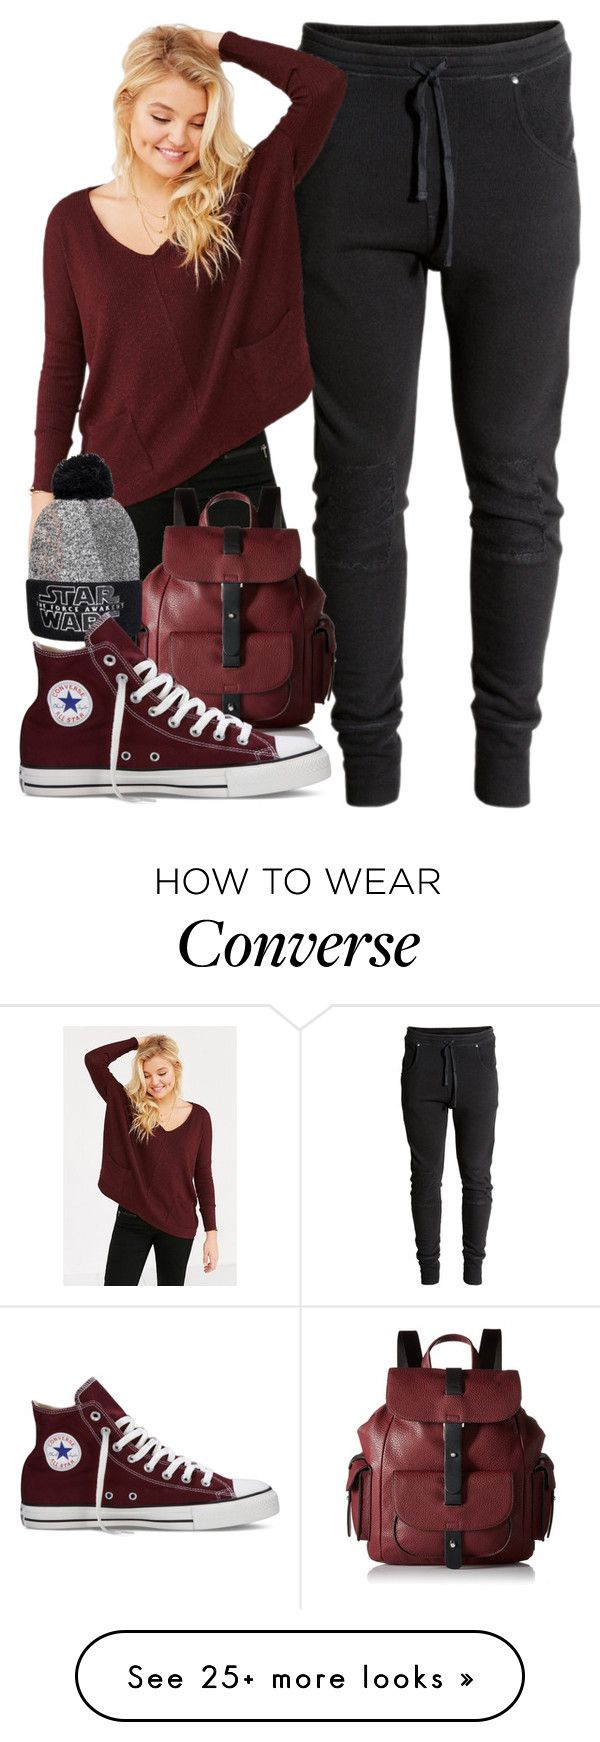 """Foster Kid #181 *Watching Star Wars*"" by jlol on Polyvore featuring H&M, BDG, Kenneth Cole Reaction and Converse"